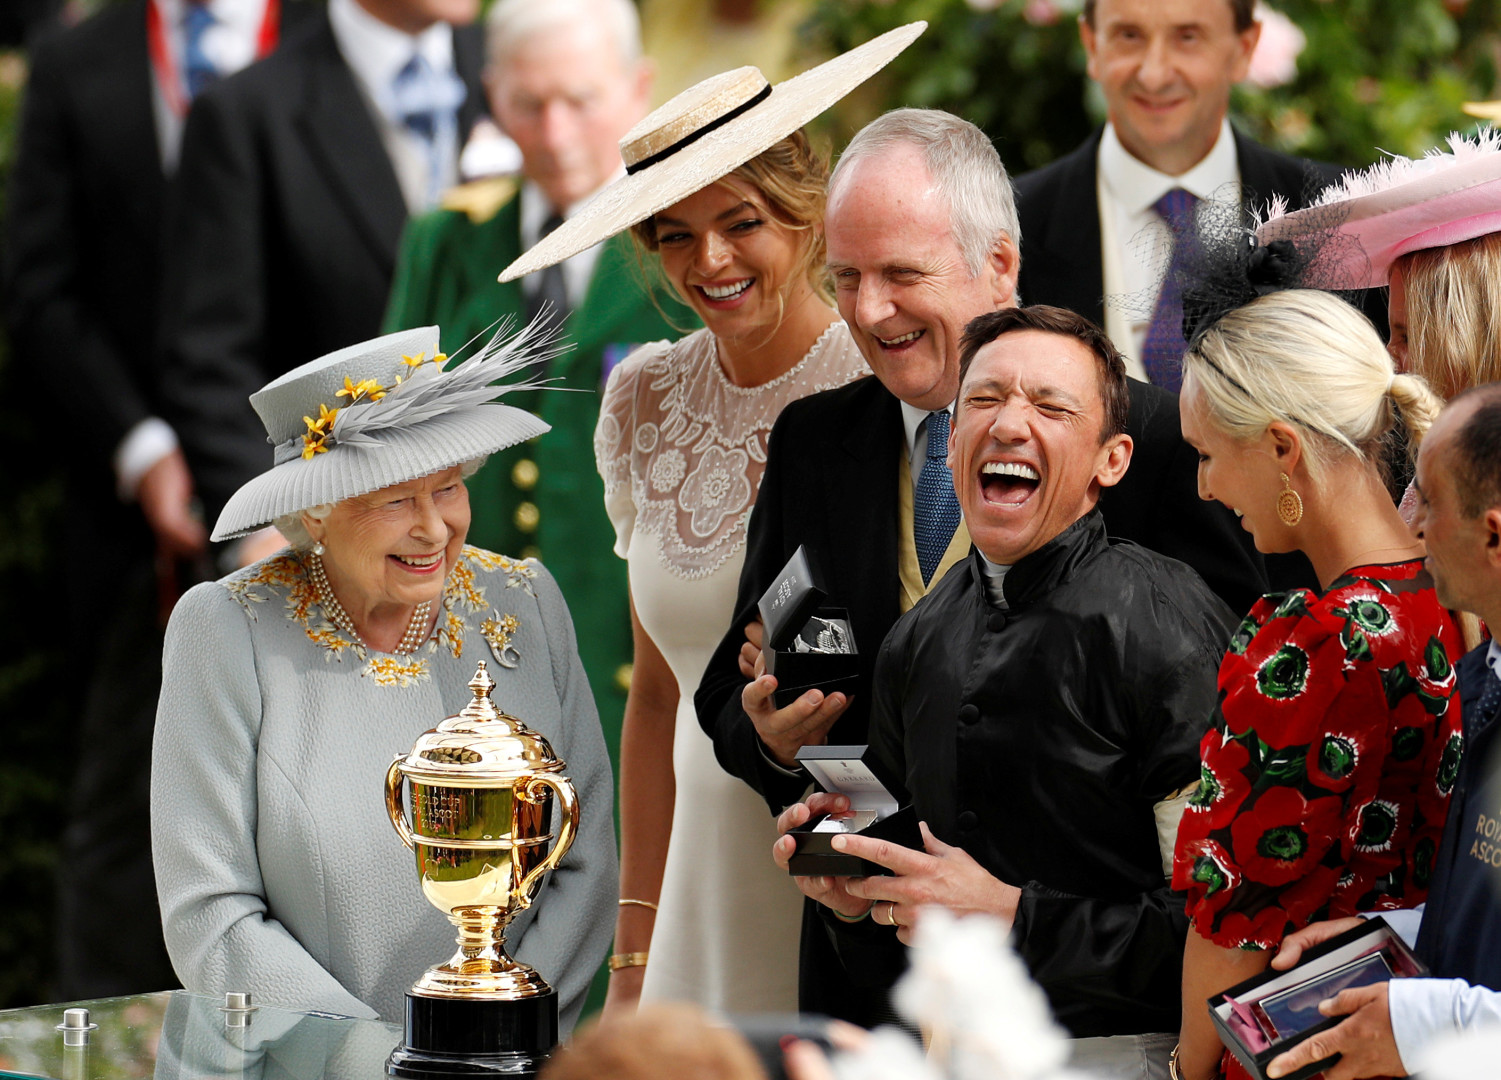 Frankie Dettori celebrate winning the Gold Cup at Ascot (optimized)